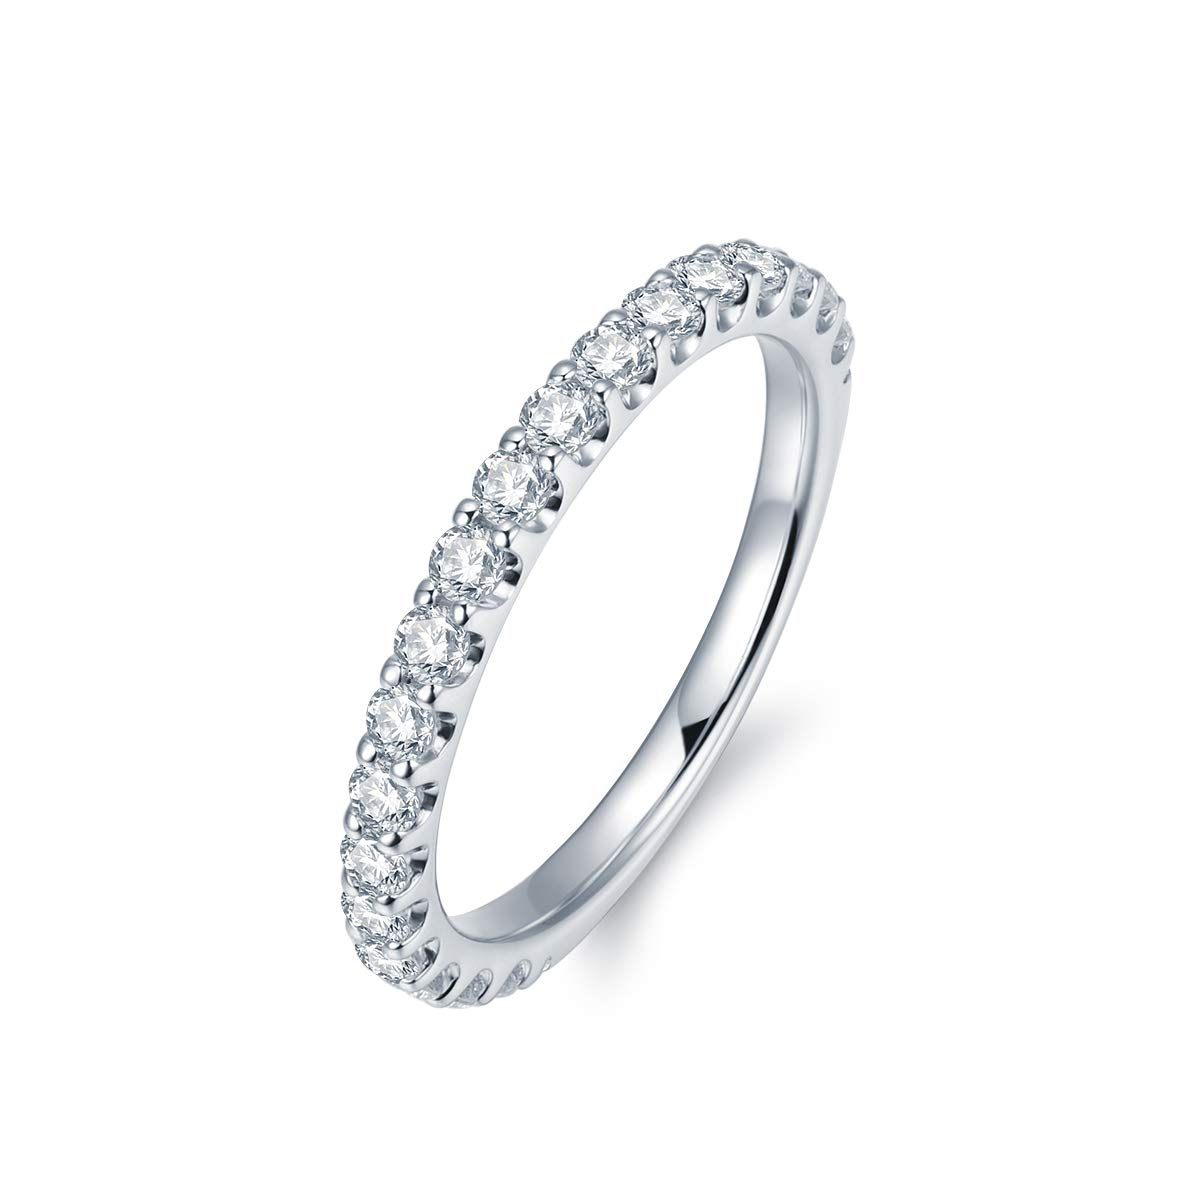 3mm Rhodium Plated Sterling Silver Simulated Diamond Cubic Zirconia CZ Half Eternity Wedding Ring (9) by Hafeez Center (Image #2)